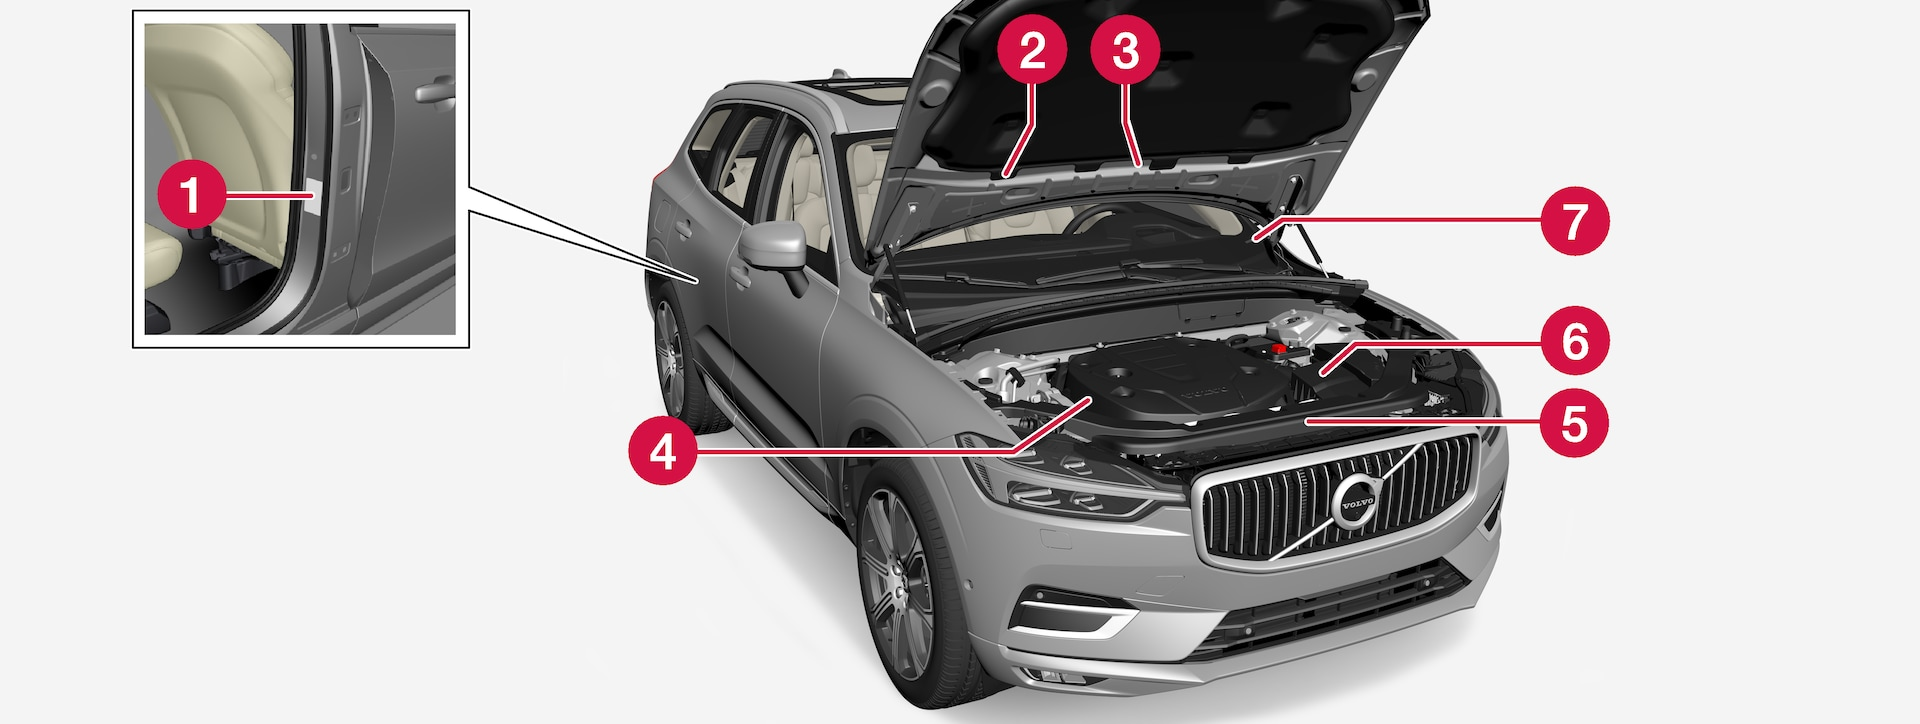 P5-1846-XC60-Type approval, labels, not Brasil, China, Russia and Saudi Arabia